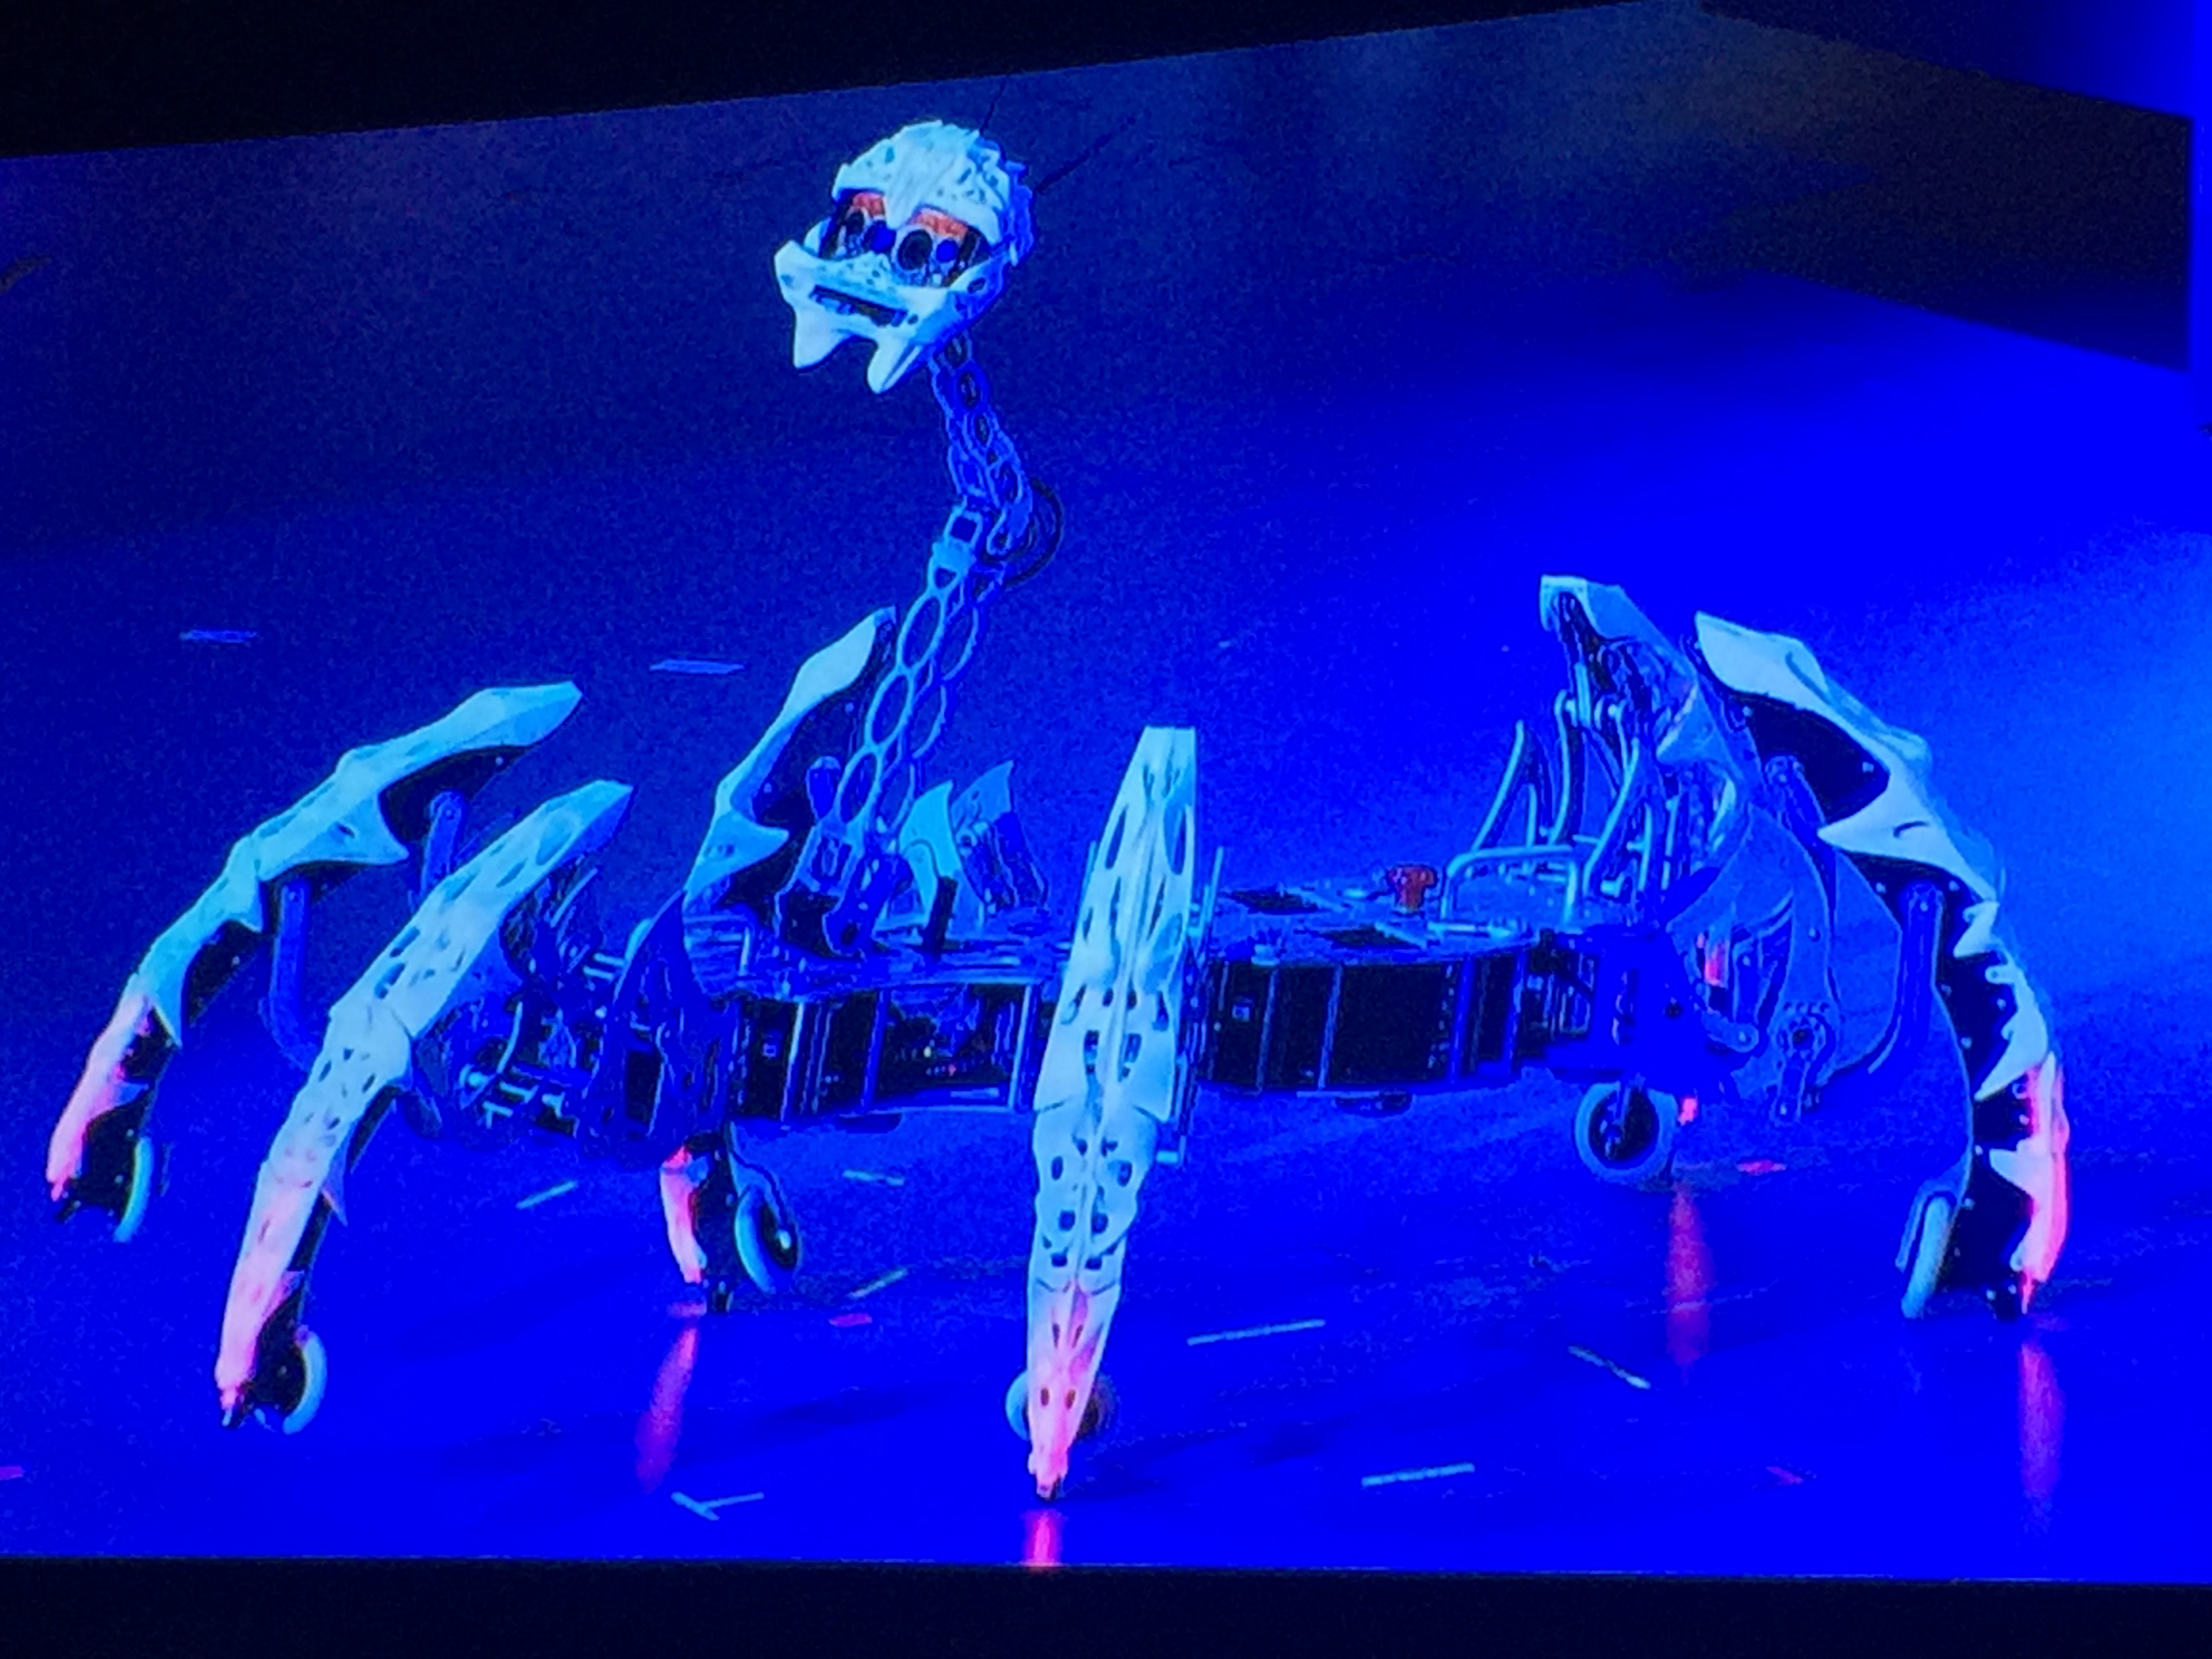 Intel's dancing, robotic spider.